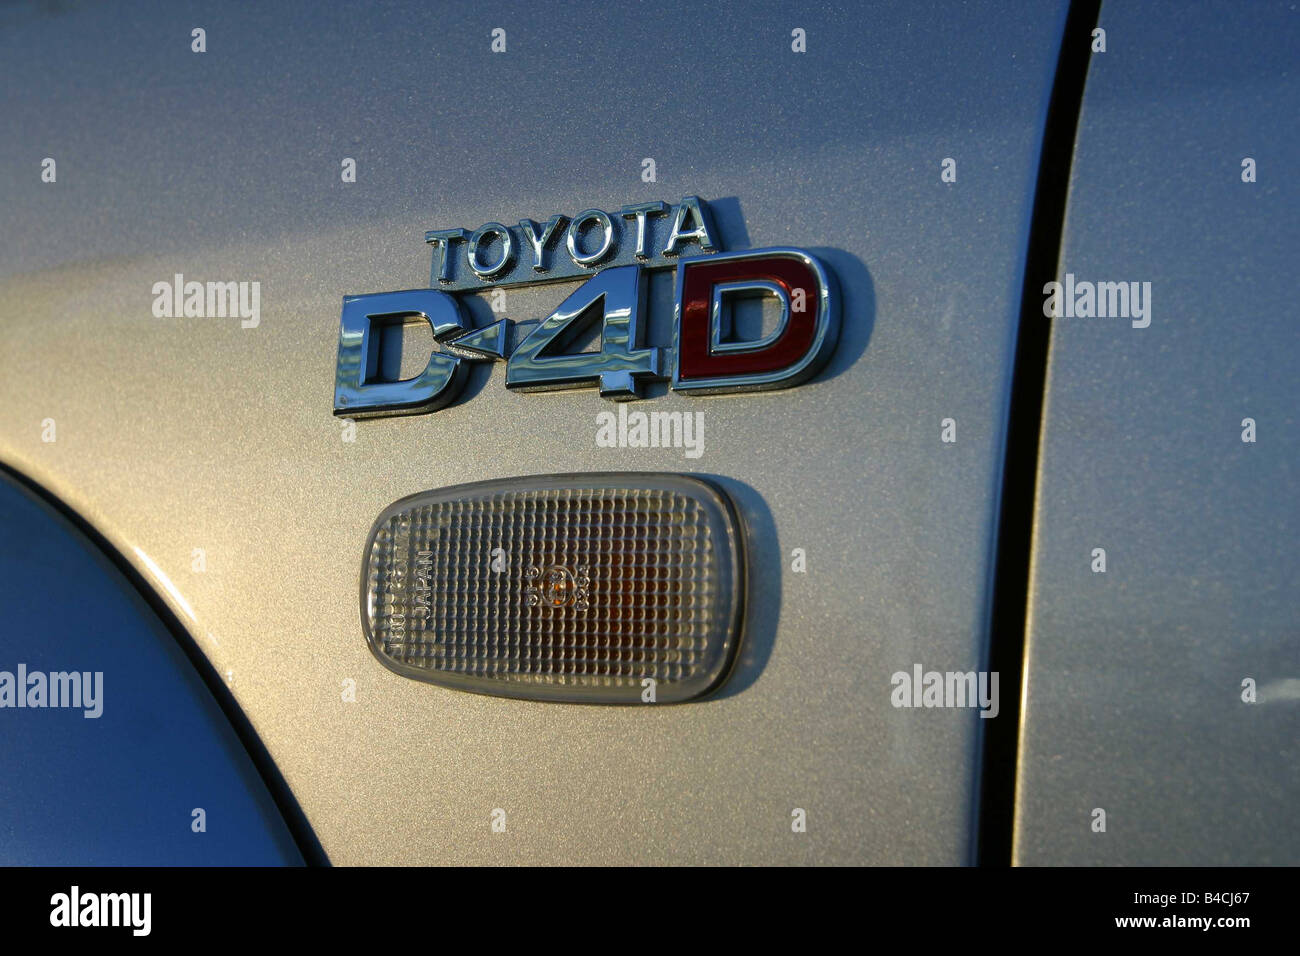 Car, Toyota Landcruiser, cross country vehicle, model year 2002-, silver, Detailed view, Model designation - Stock Image